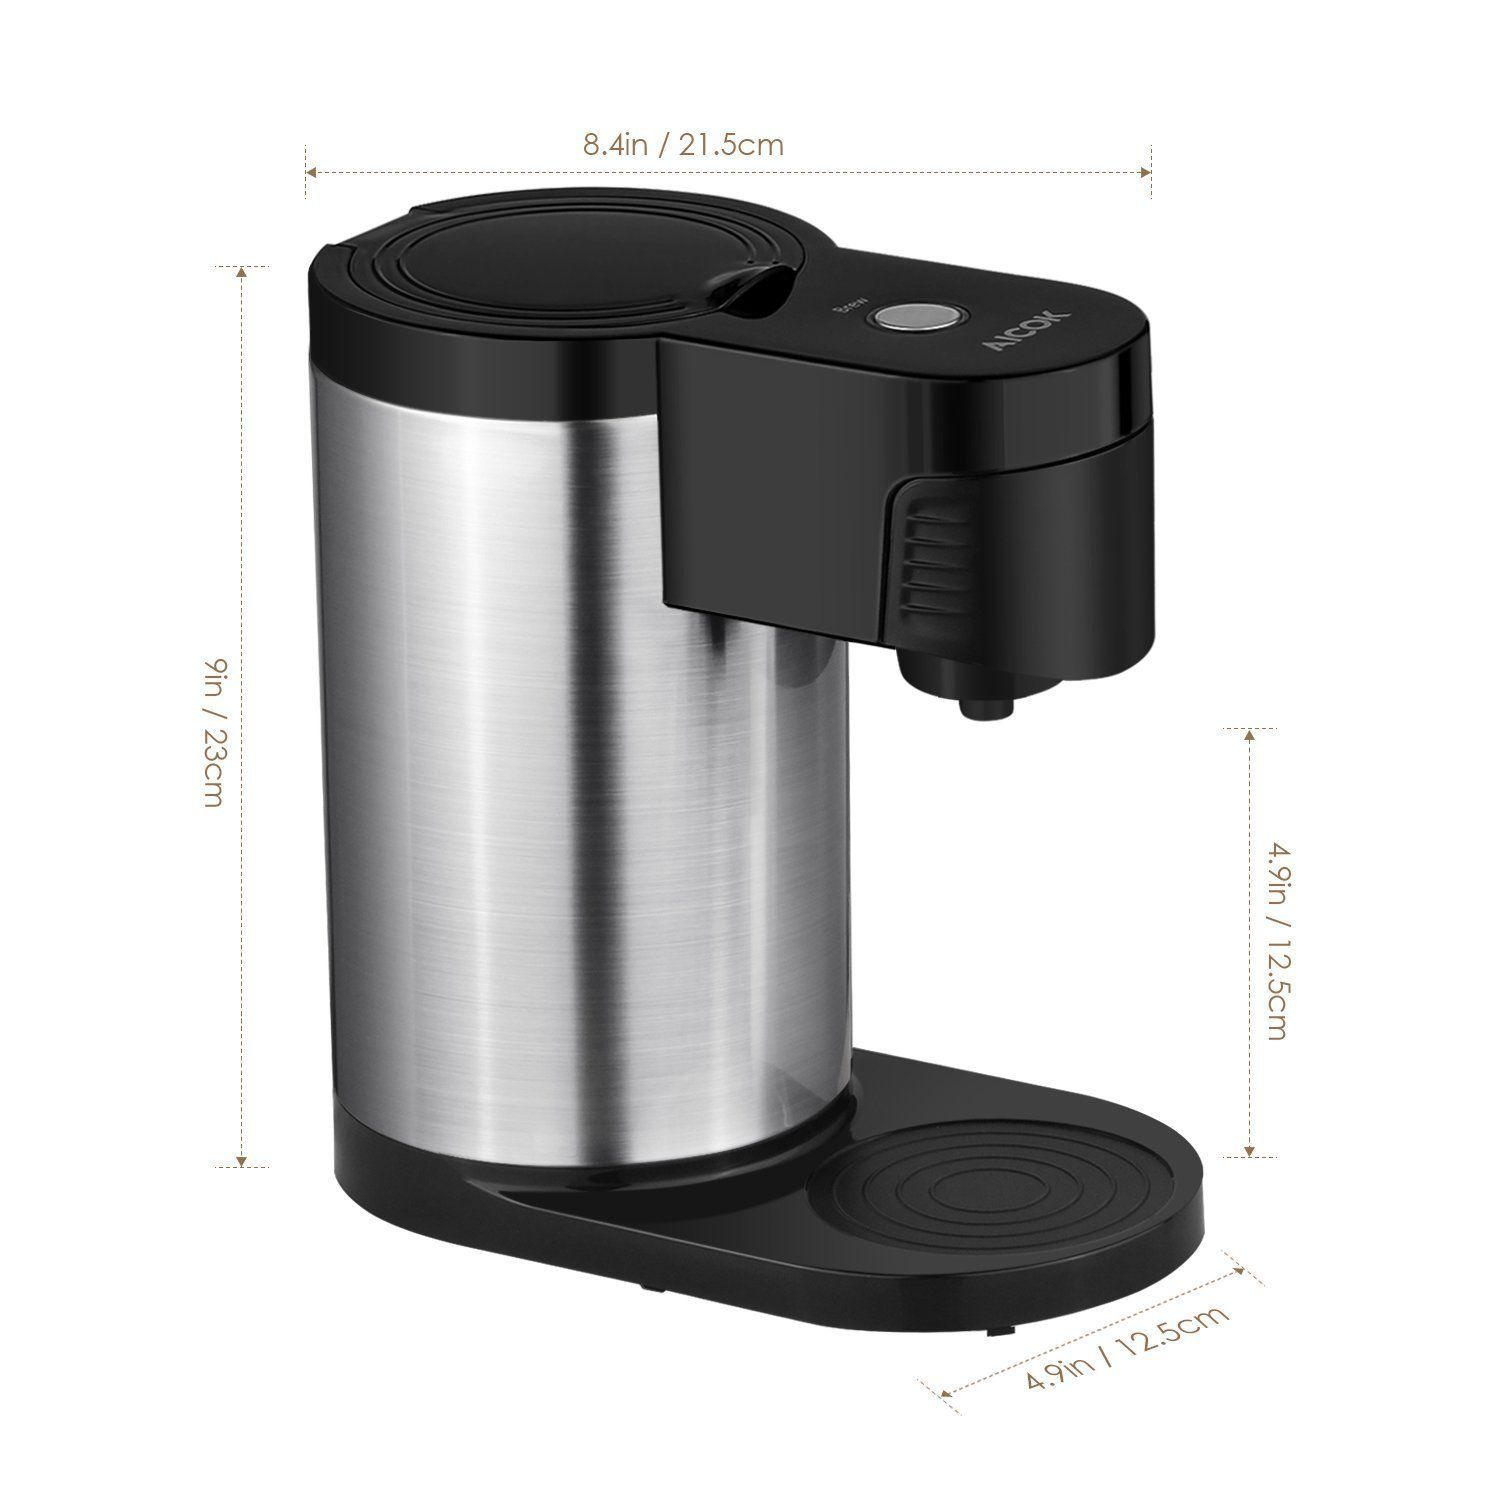 Amazoncom Aicok Single Serve Coffee Maker K Cup Stainless Steel